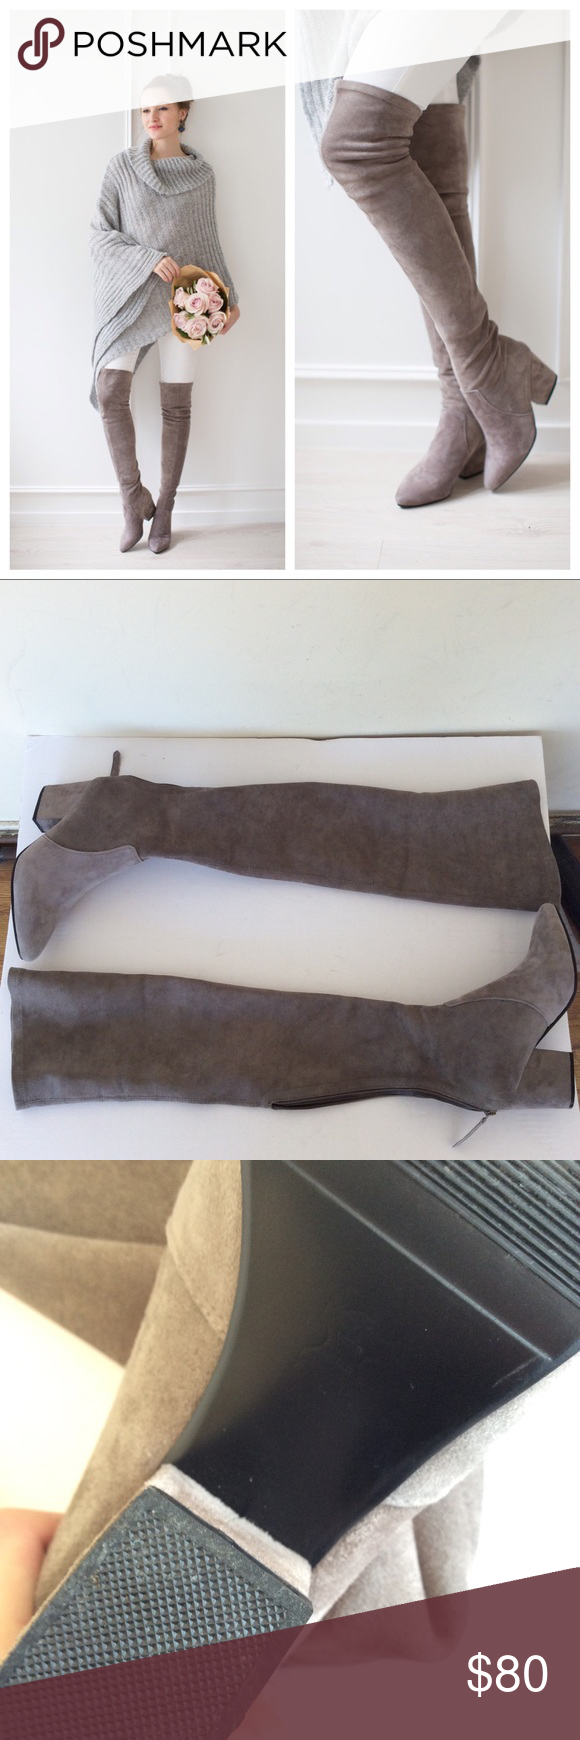 c5f6bc2c693 Goodnight Macaroon Carina Taupe OTK Boots Goodnight Macaroon  Carina  Taupe  Over The Knee Suede